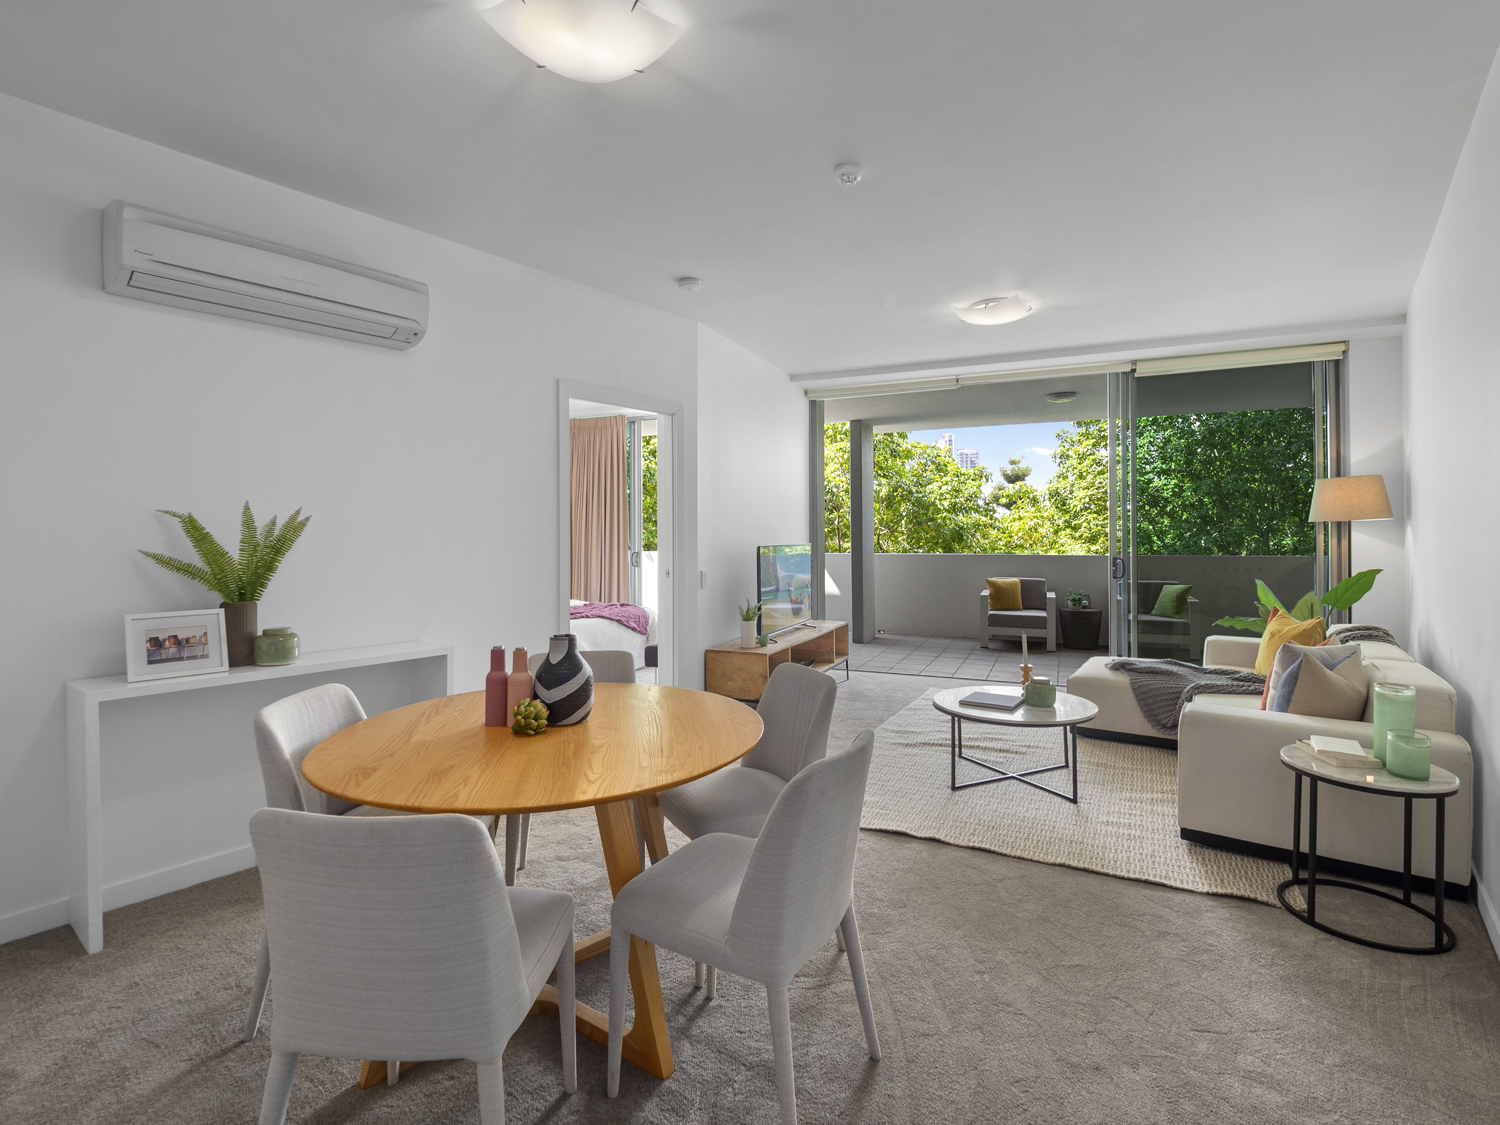 The lounge and dining area - Photographing an apartment for sale at 92 Quay St South Brisbane